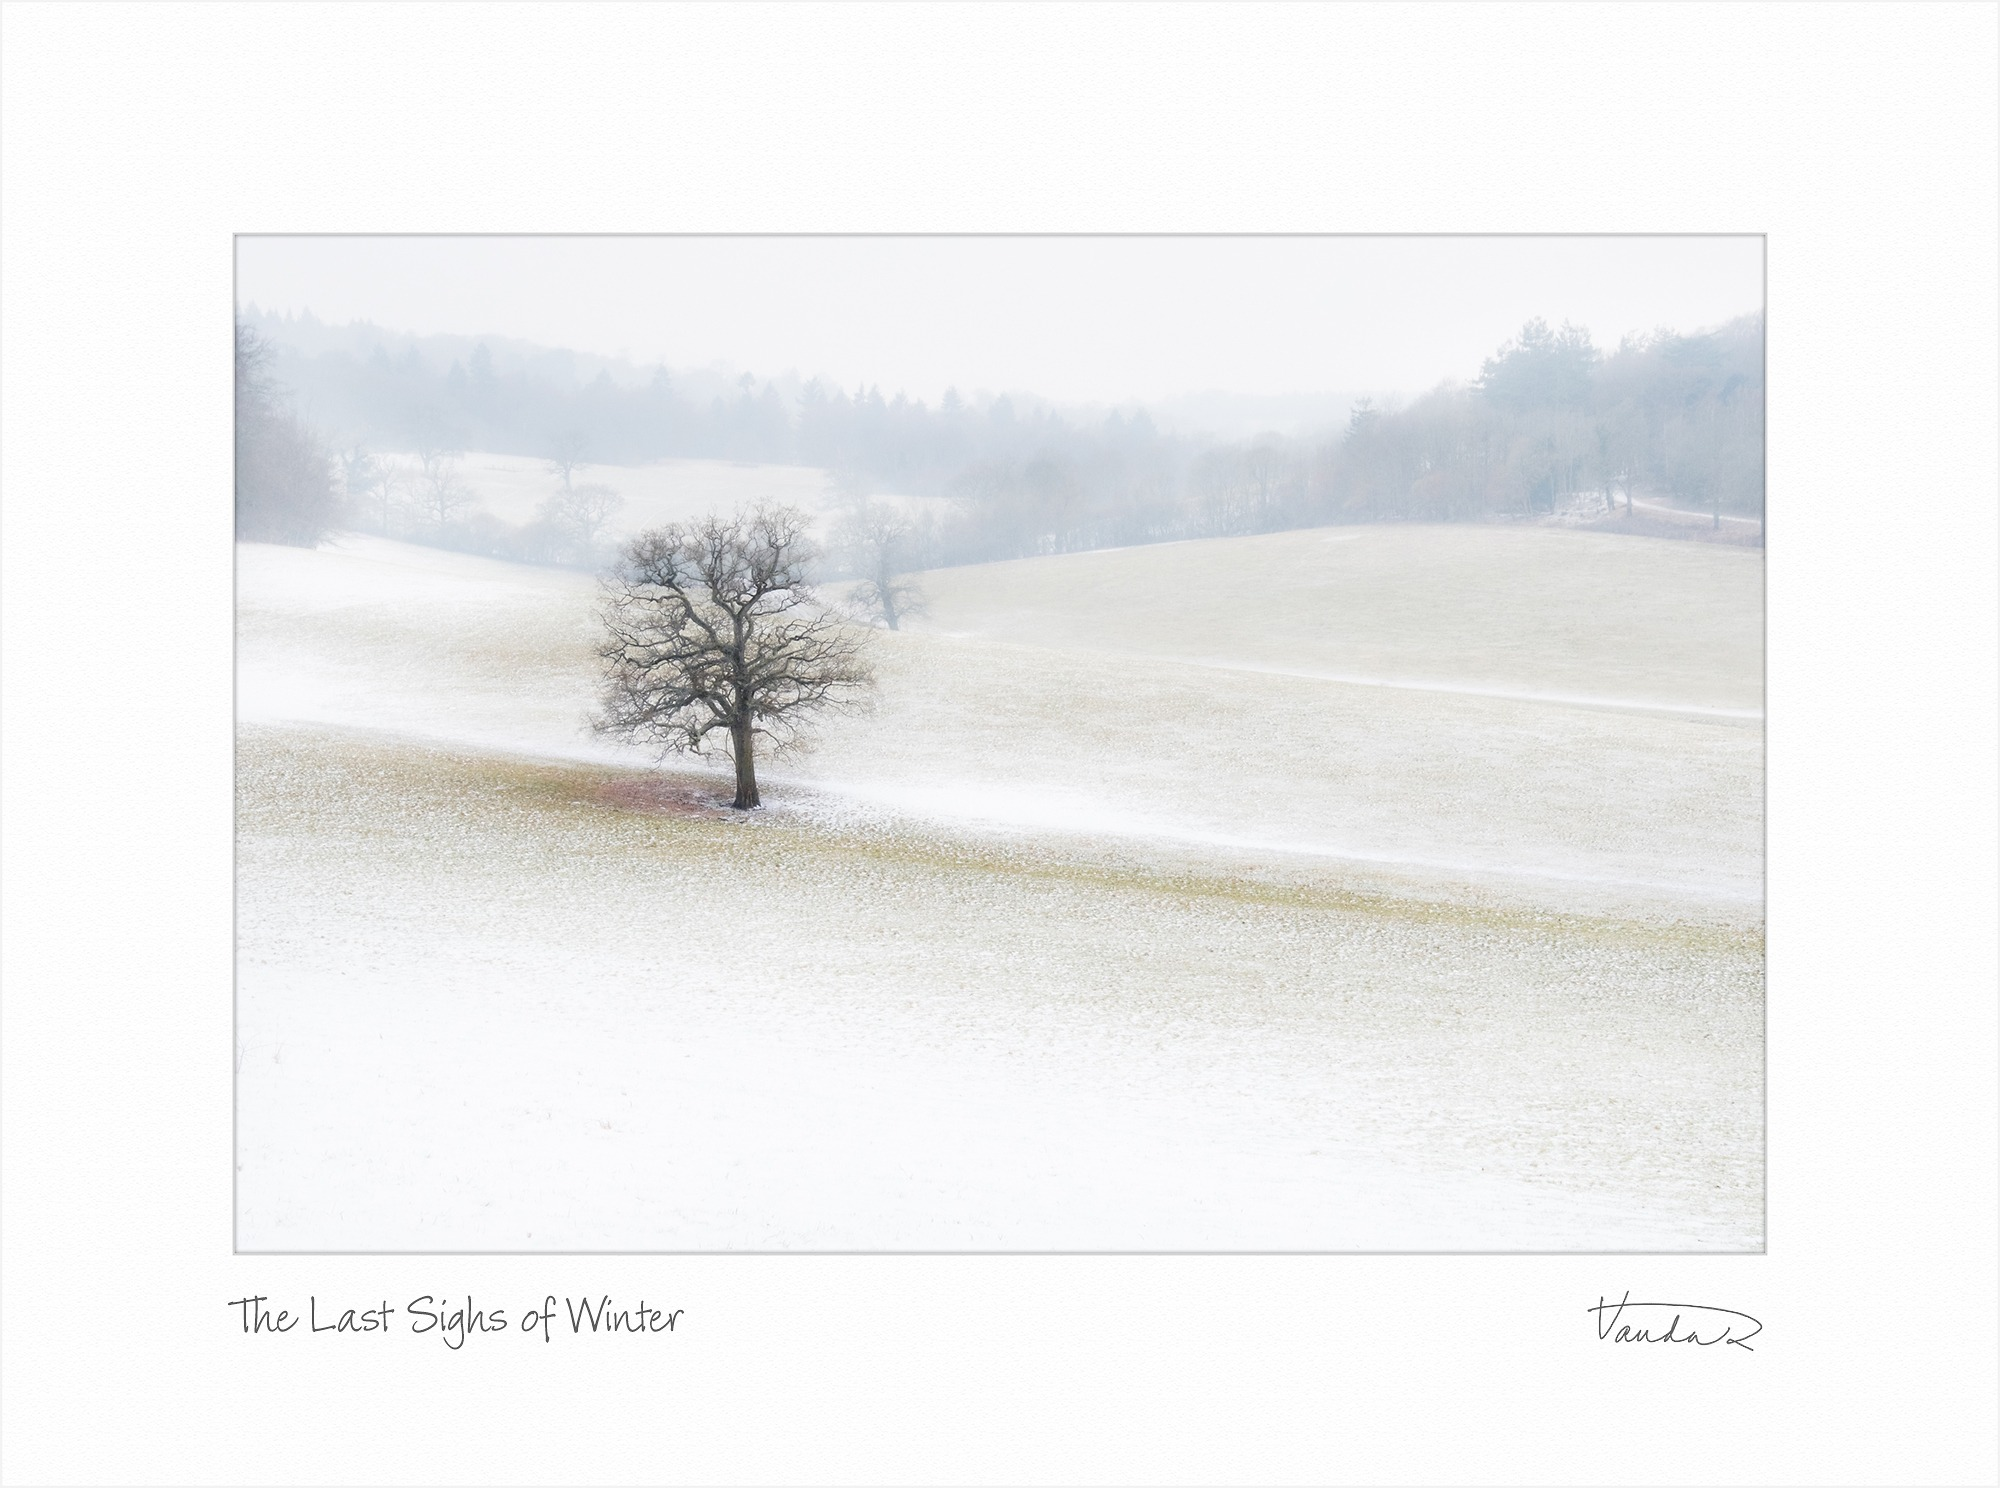 The Last Sighs of Winter